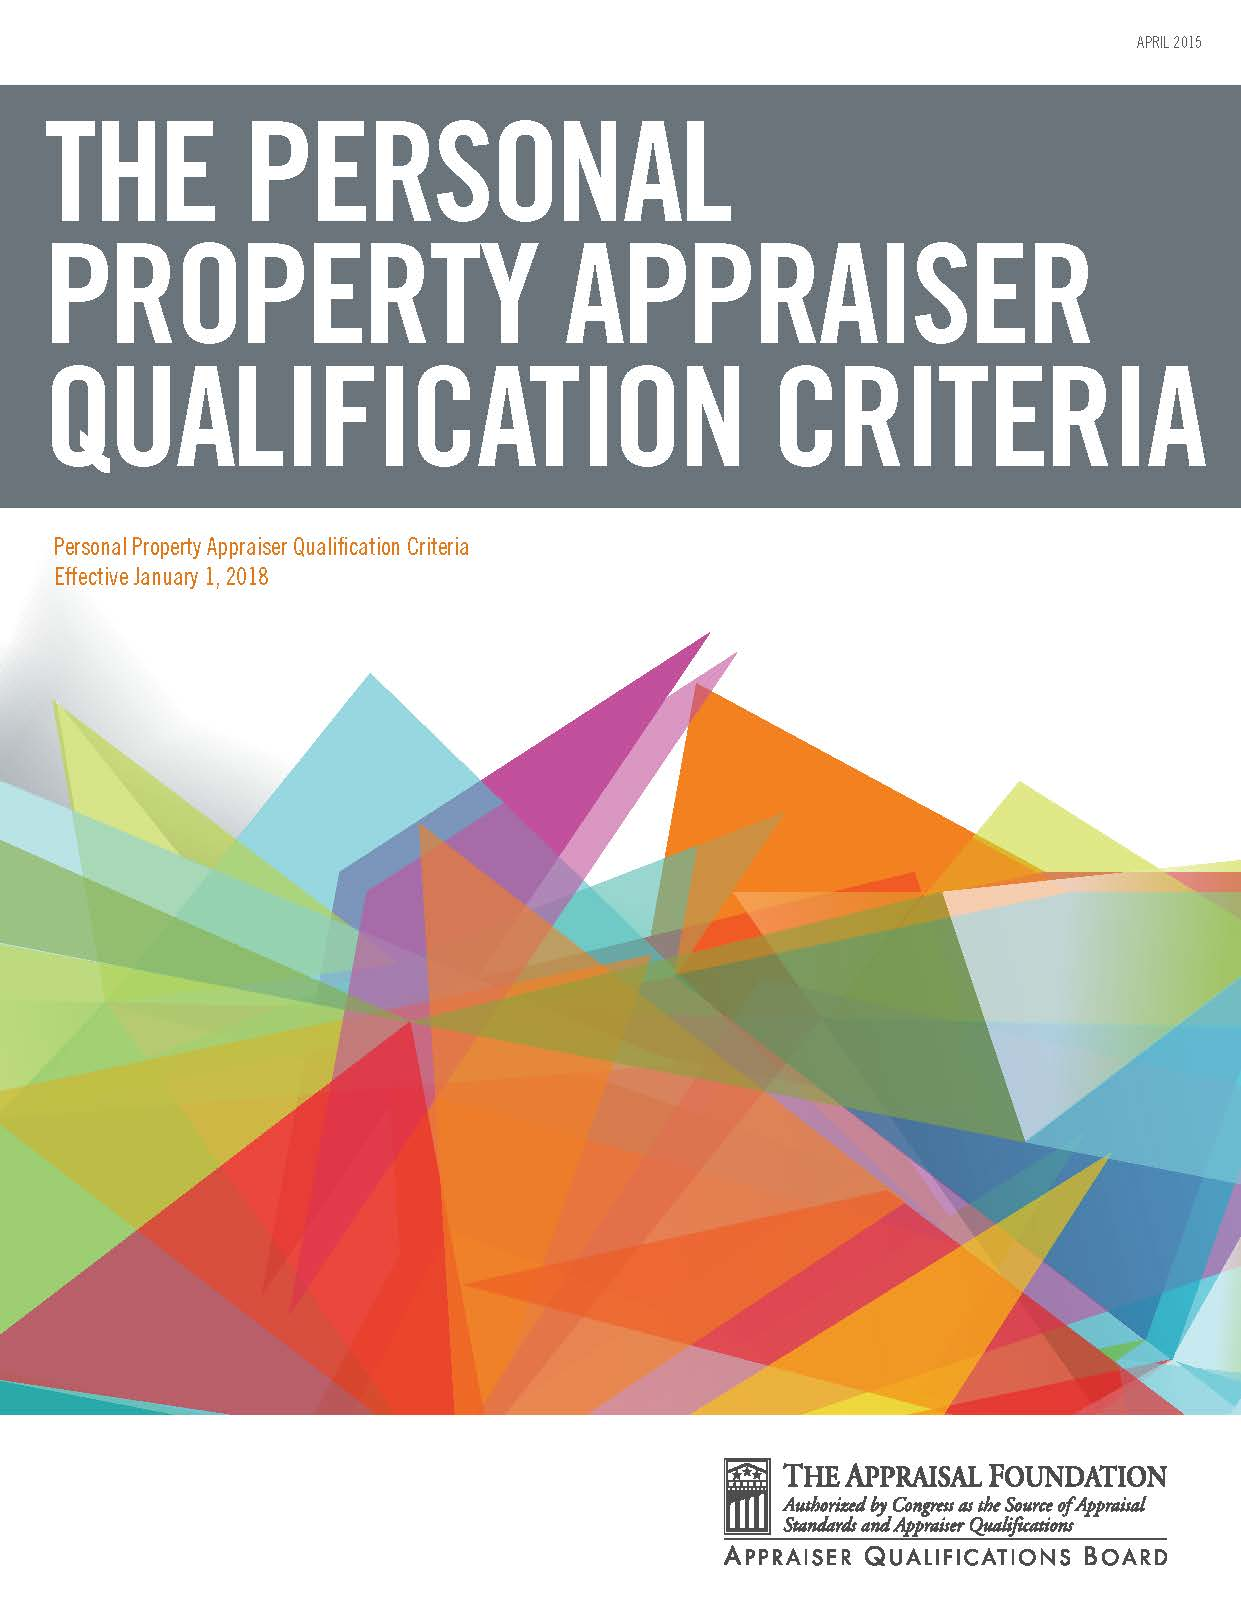 Personal Property Appraiser Qualification Criteria